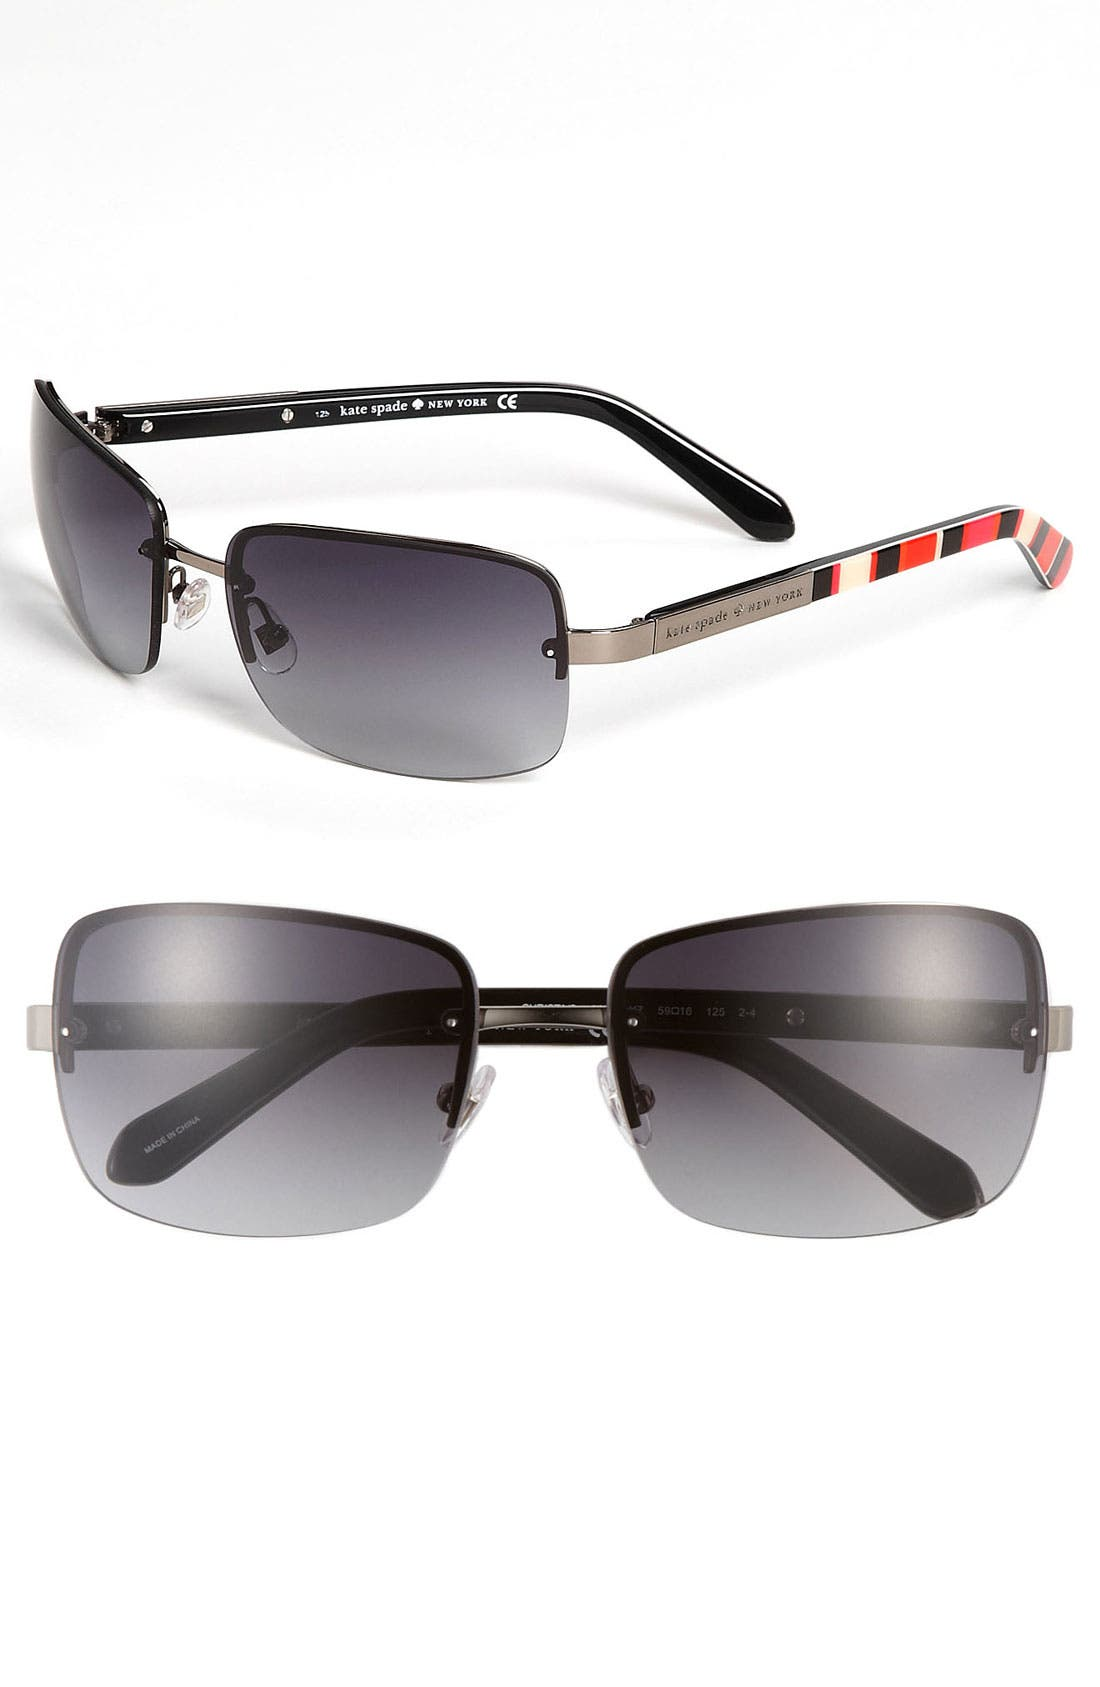 Main Image - kate spade new york 'christa' 59mm rimless sunglasses